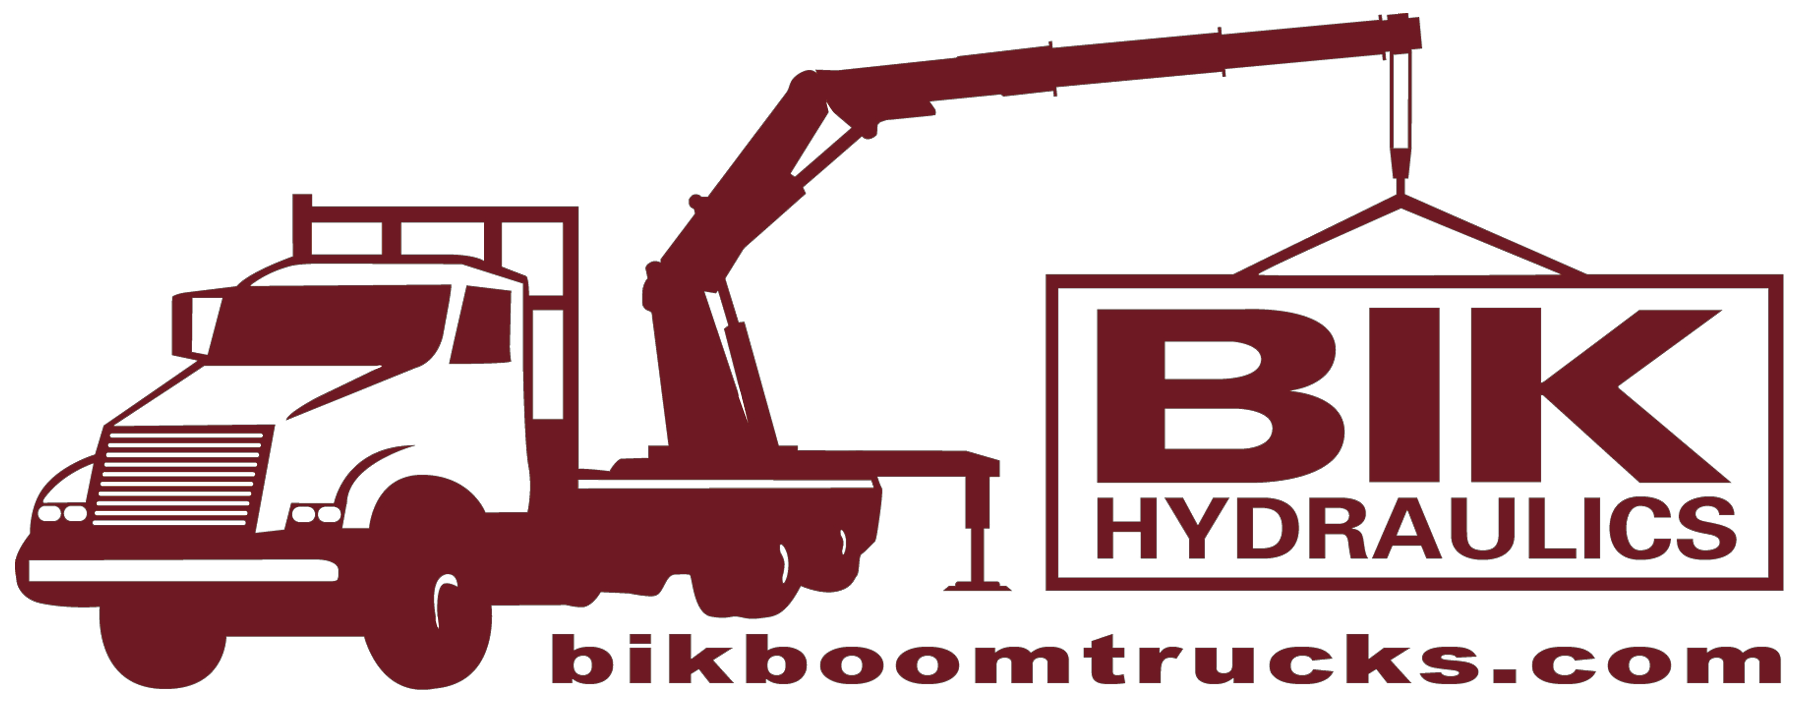 Boom Trucks | Buy Used Truck & Cranes - BIK Boom Trucks